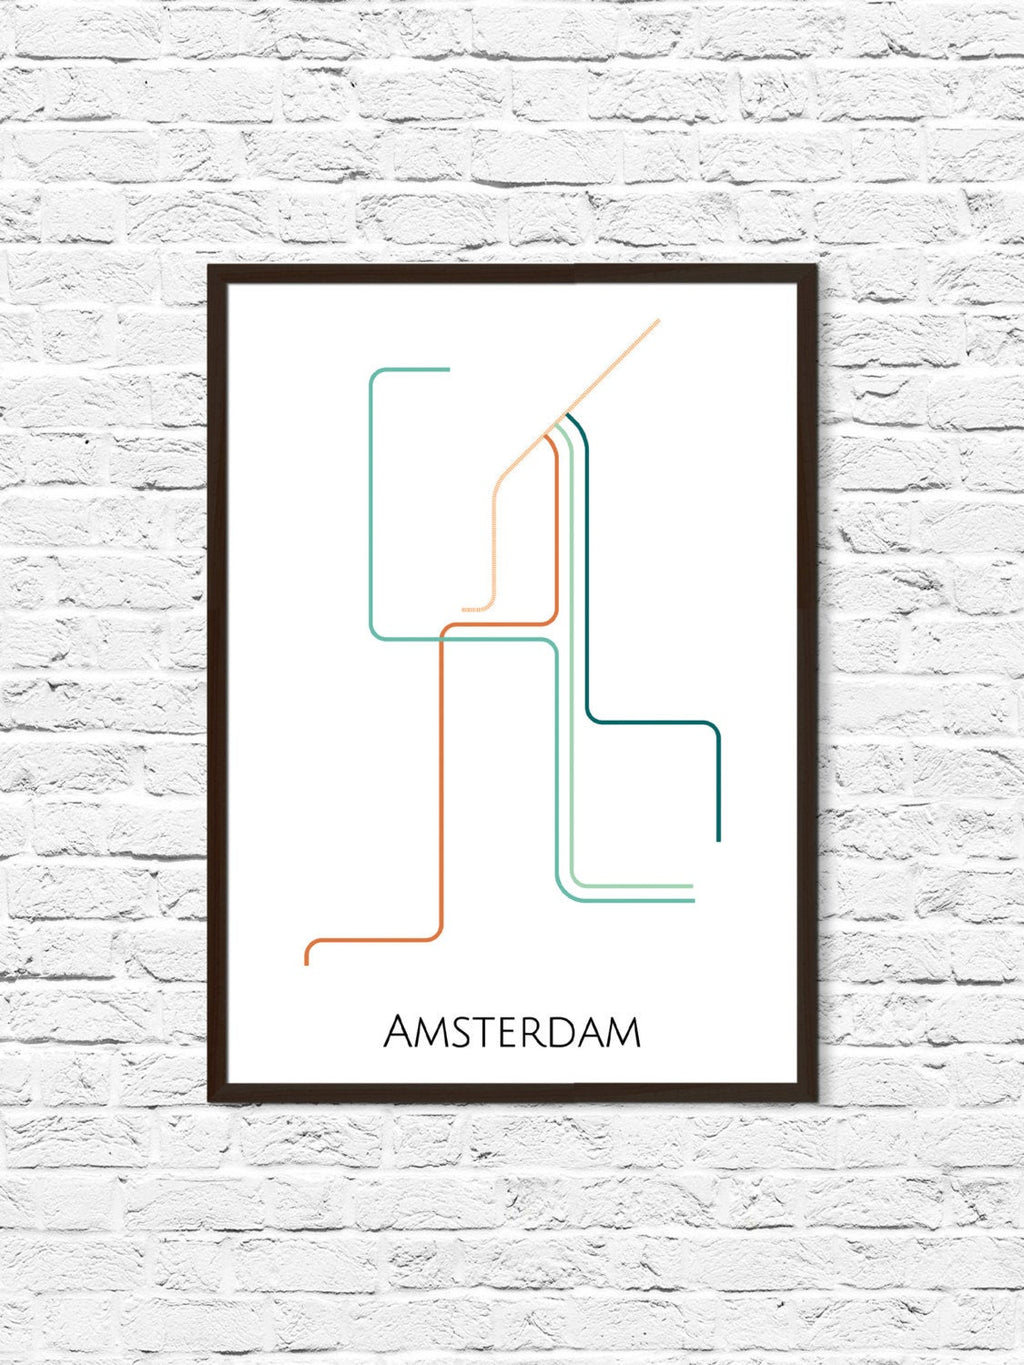 Amsterdam Subway Map - ParMar Media - 1